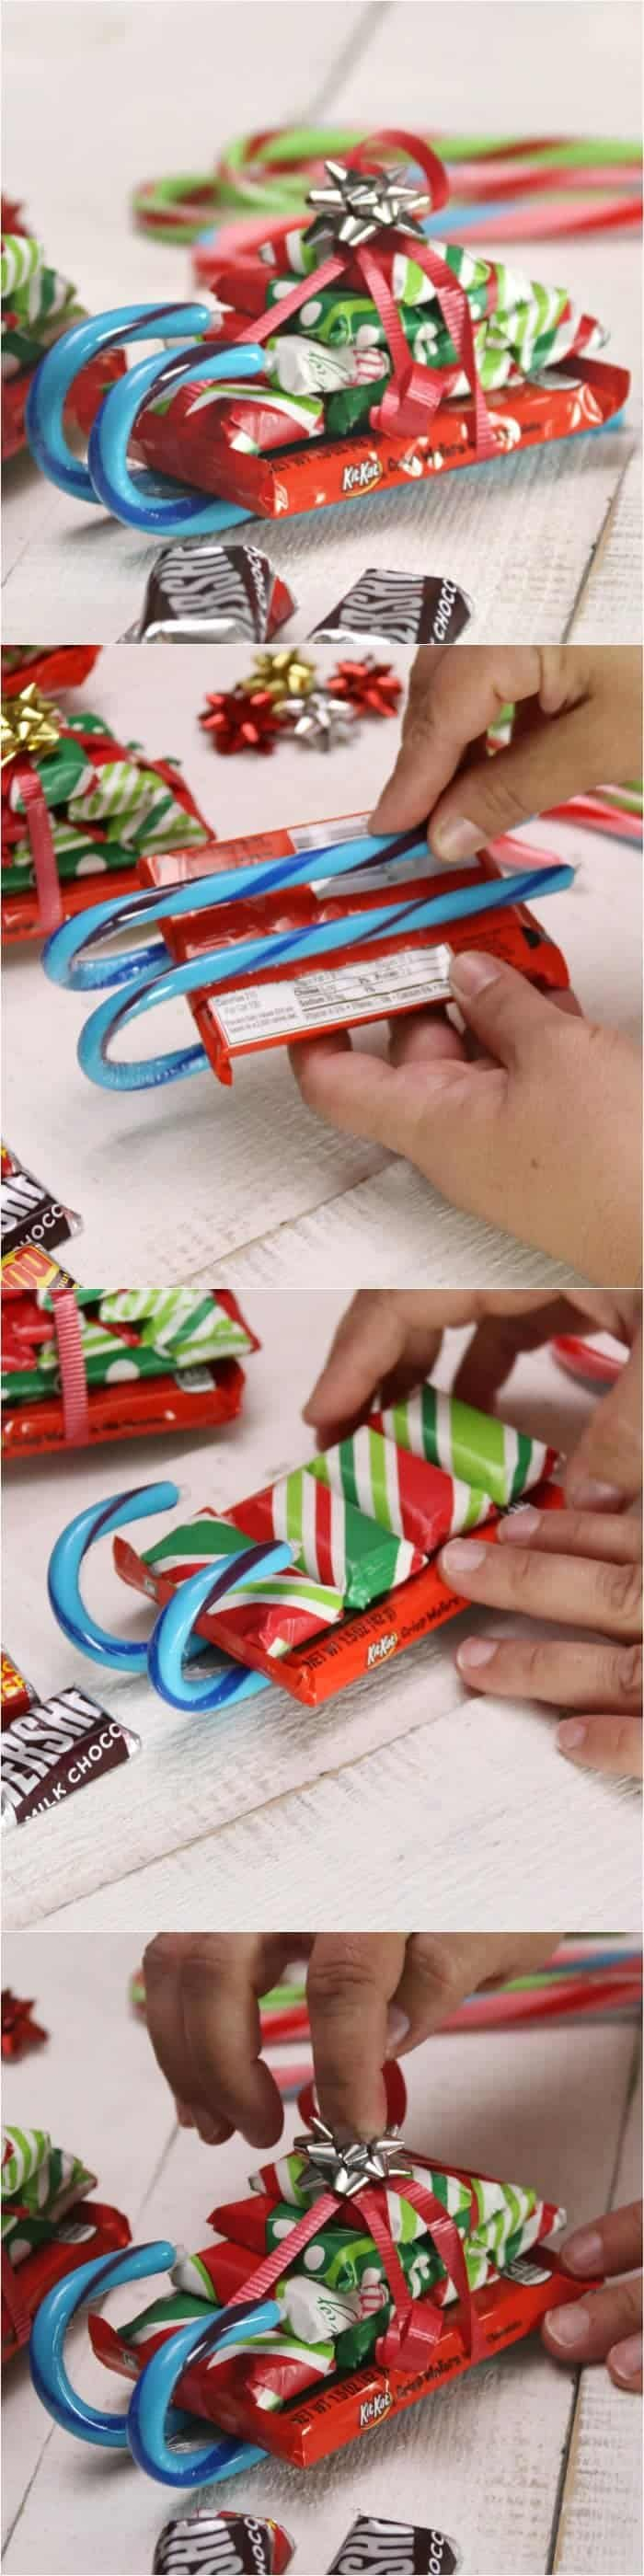 How to Make Candy Cane Sleighs with Candy Bars for Christmas! These make the best DIY Christmas gifts! Perfect for teachers, friends and family! #DIYgift #holidaygift #christmasgift #howtomake #DIY #candybars #candycane